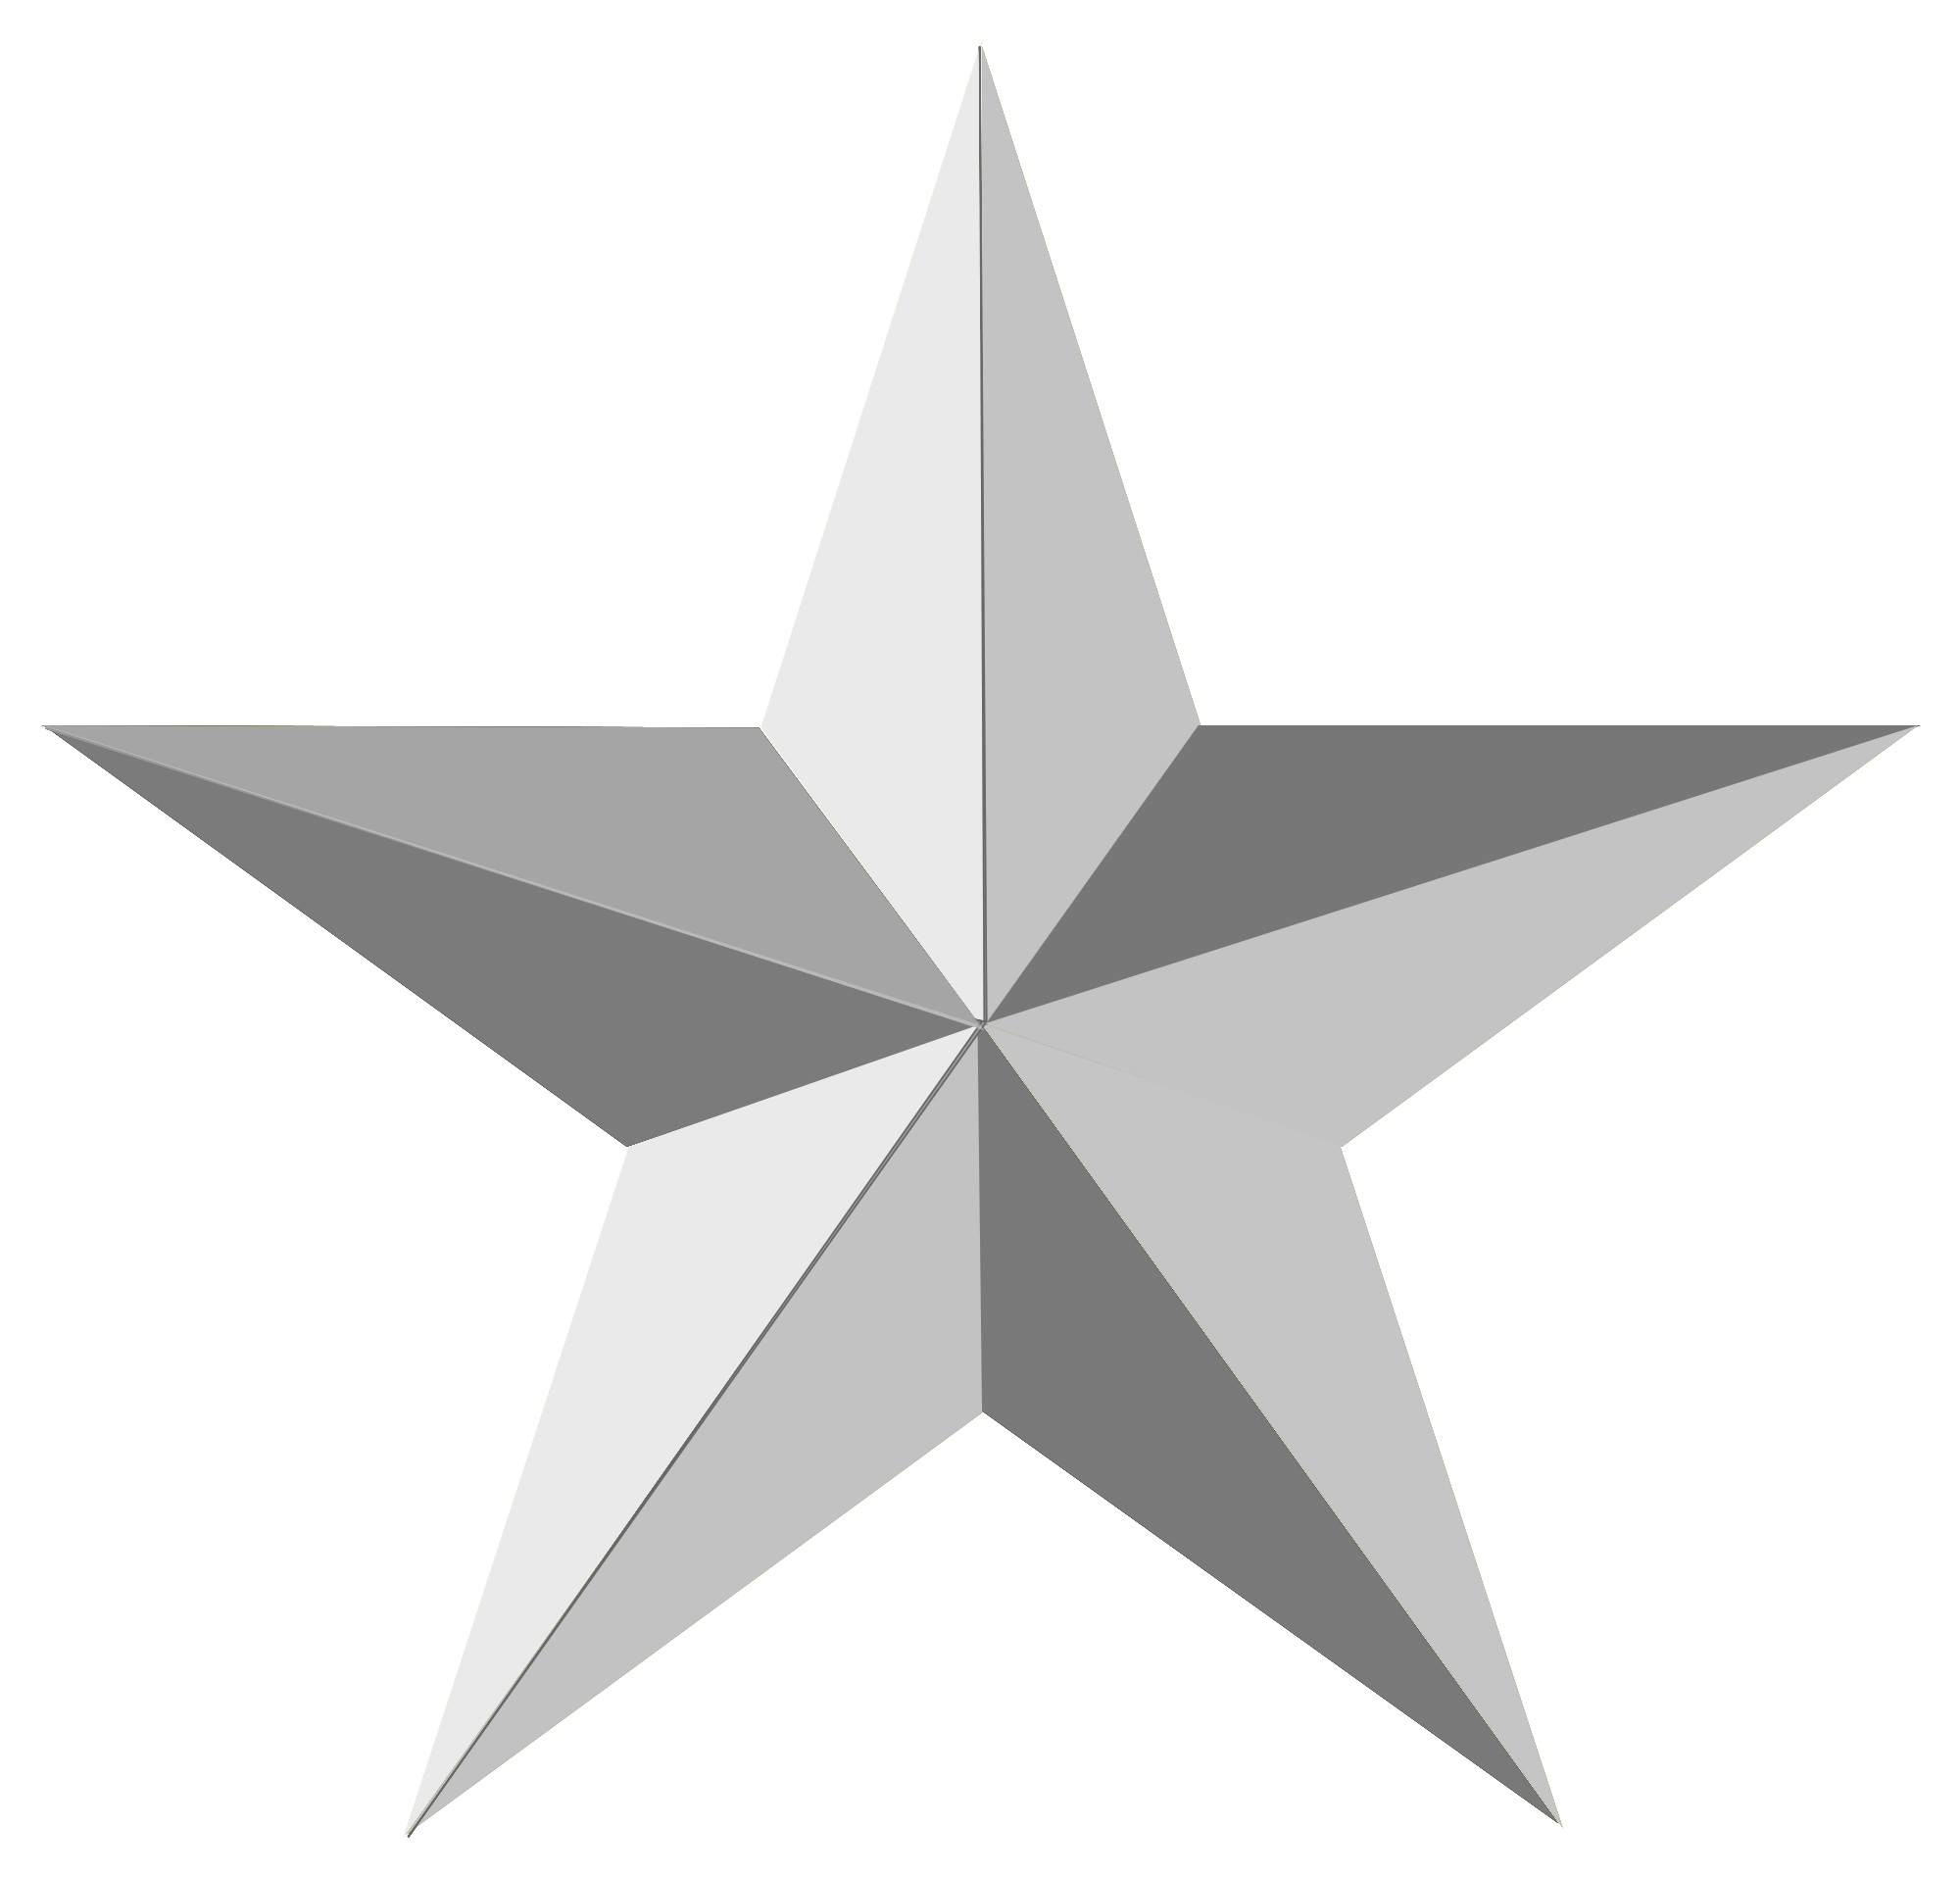 Star images all. Stars transparent png graphic freeuse stock